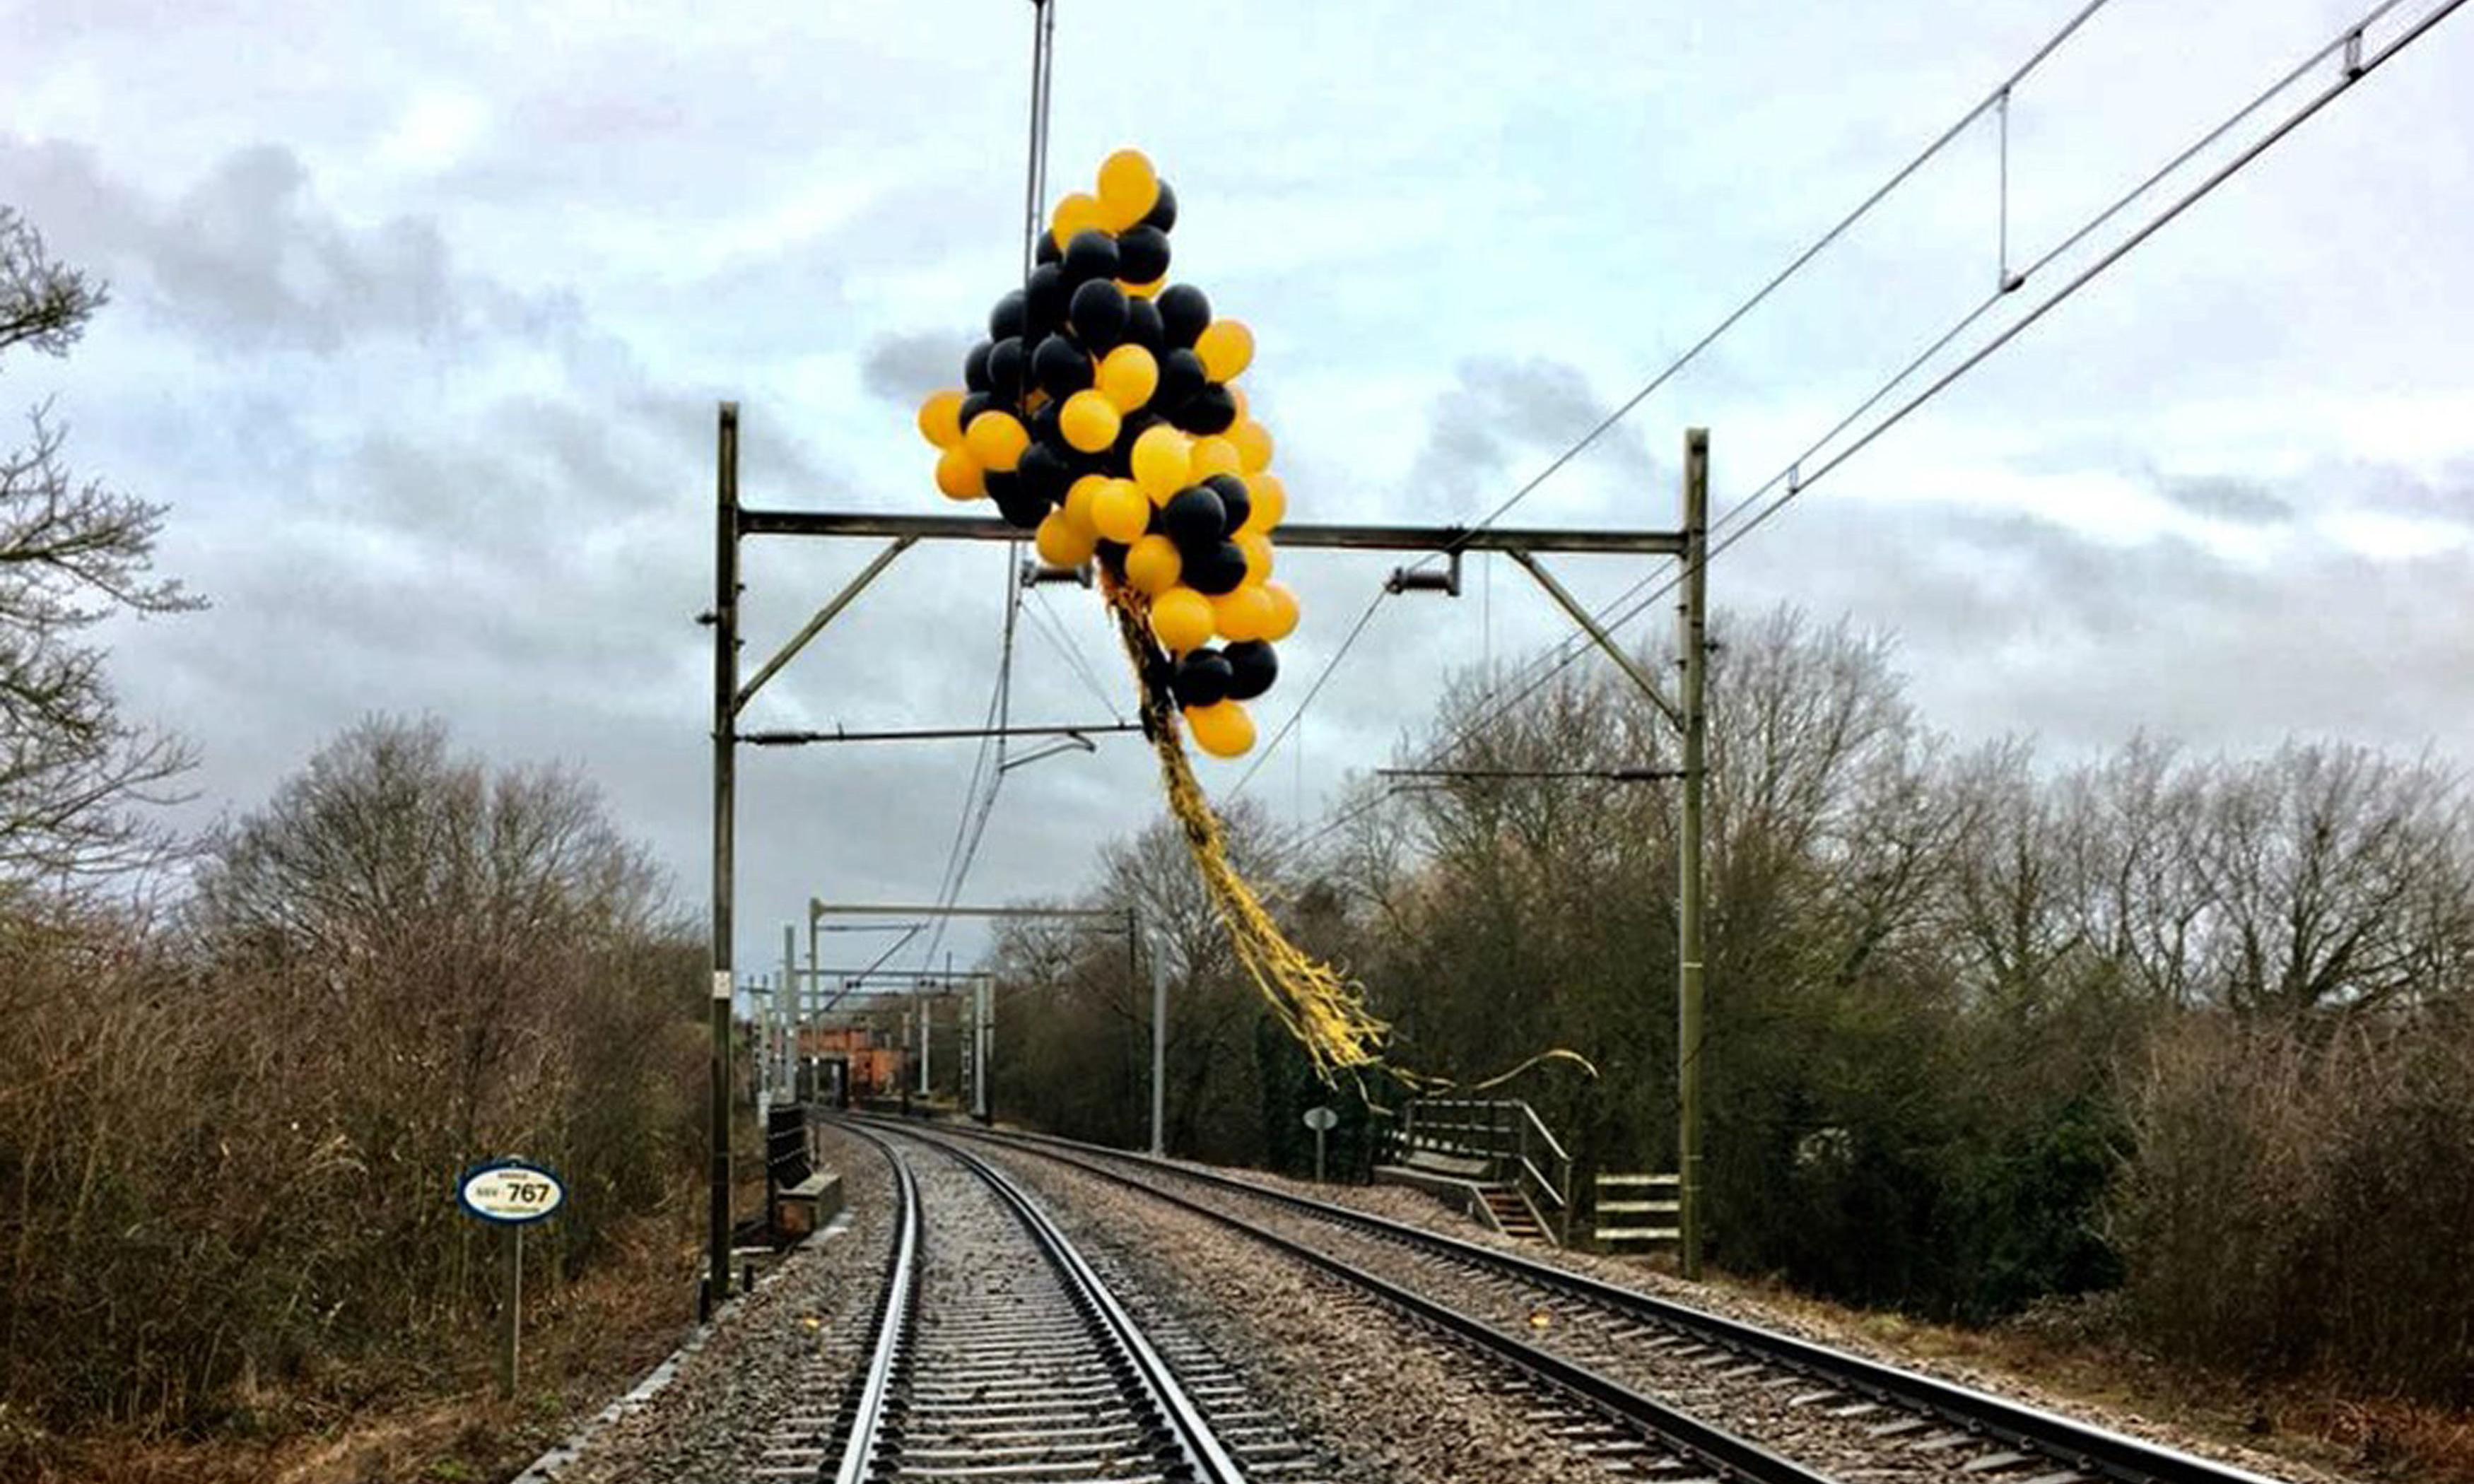 Helium balloons blamed for hundreds of train delays